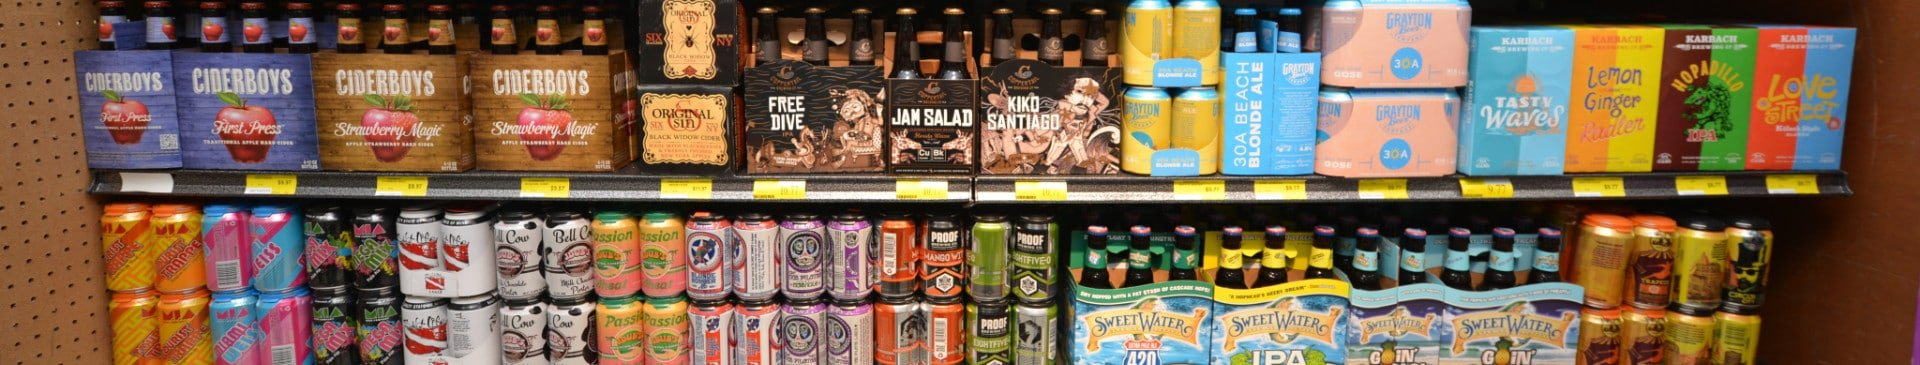 Variety of beers at the Apalachicola Piggly Wiggly